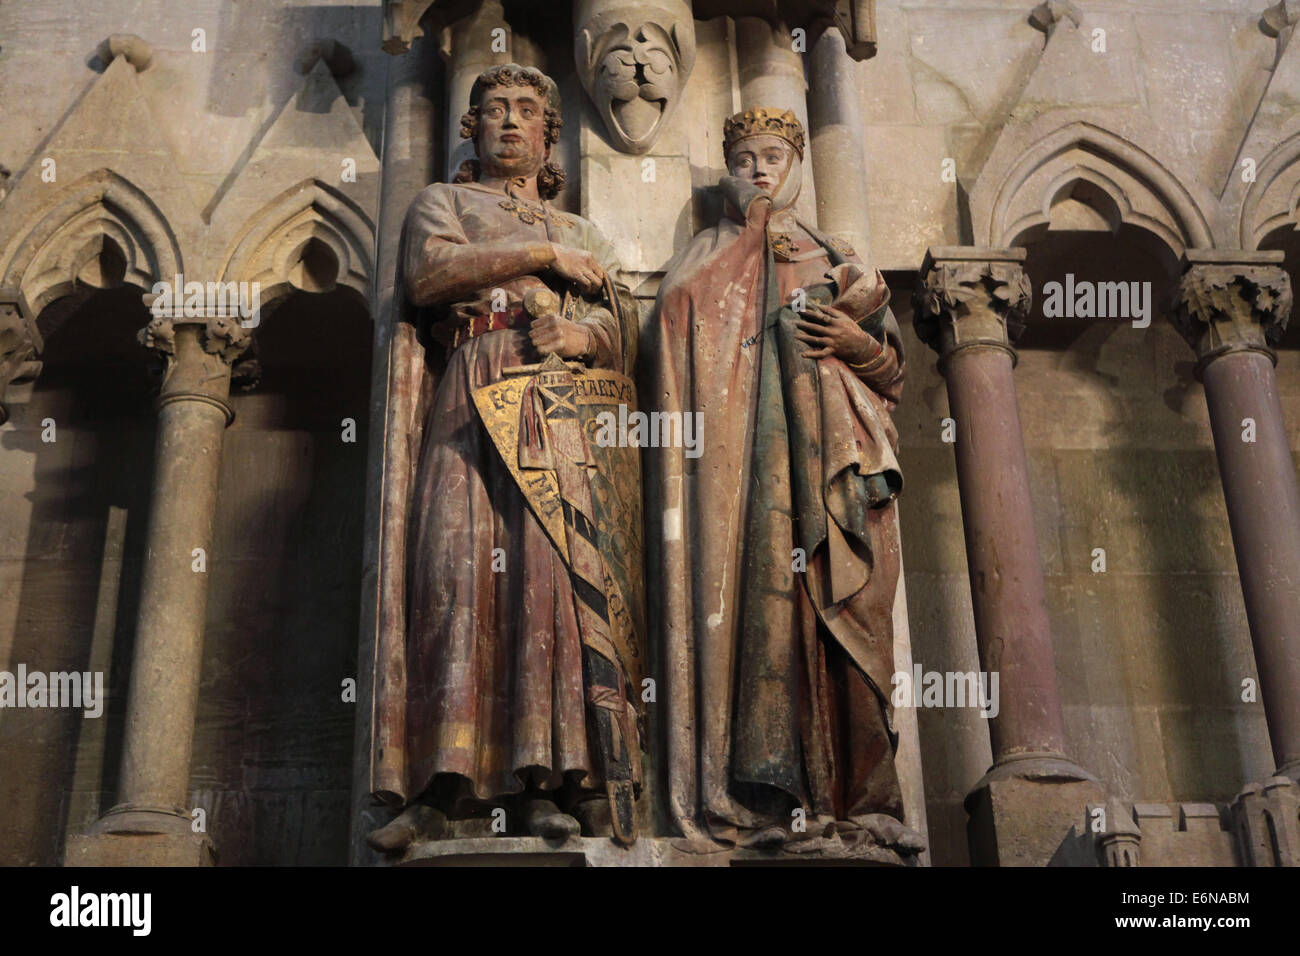 Gothic statues of Margrave Eckard II and his wife Uta in Naumburg Cathedral in Naumburg, Saxony Anhalt, Germany. - Stock Image